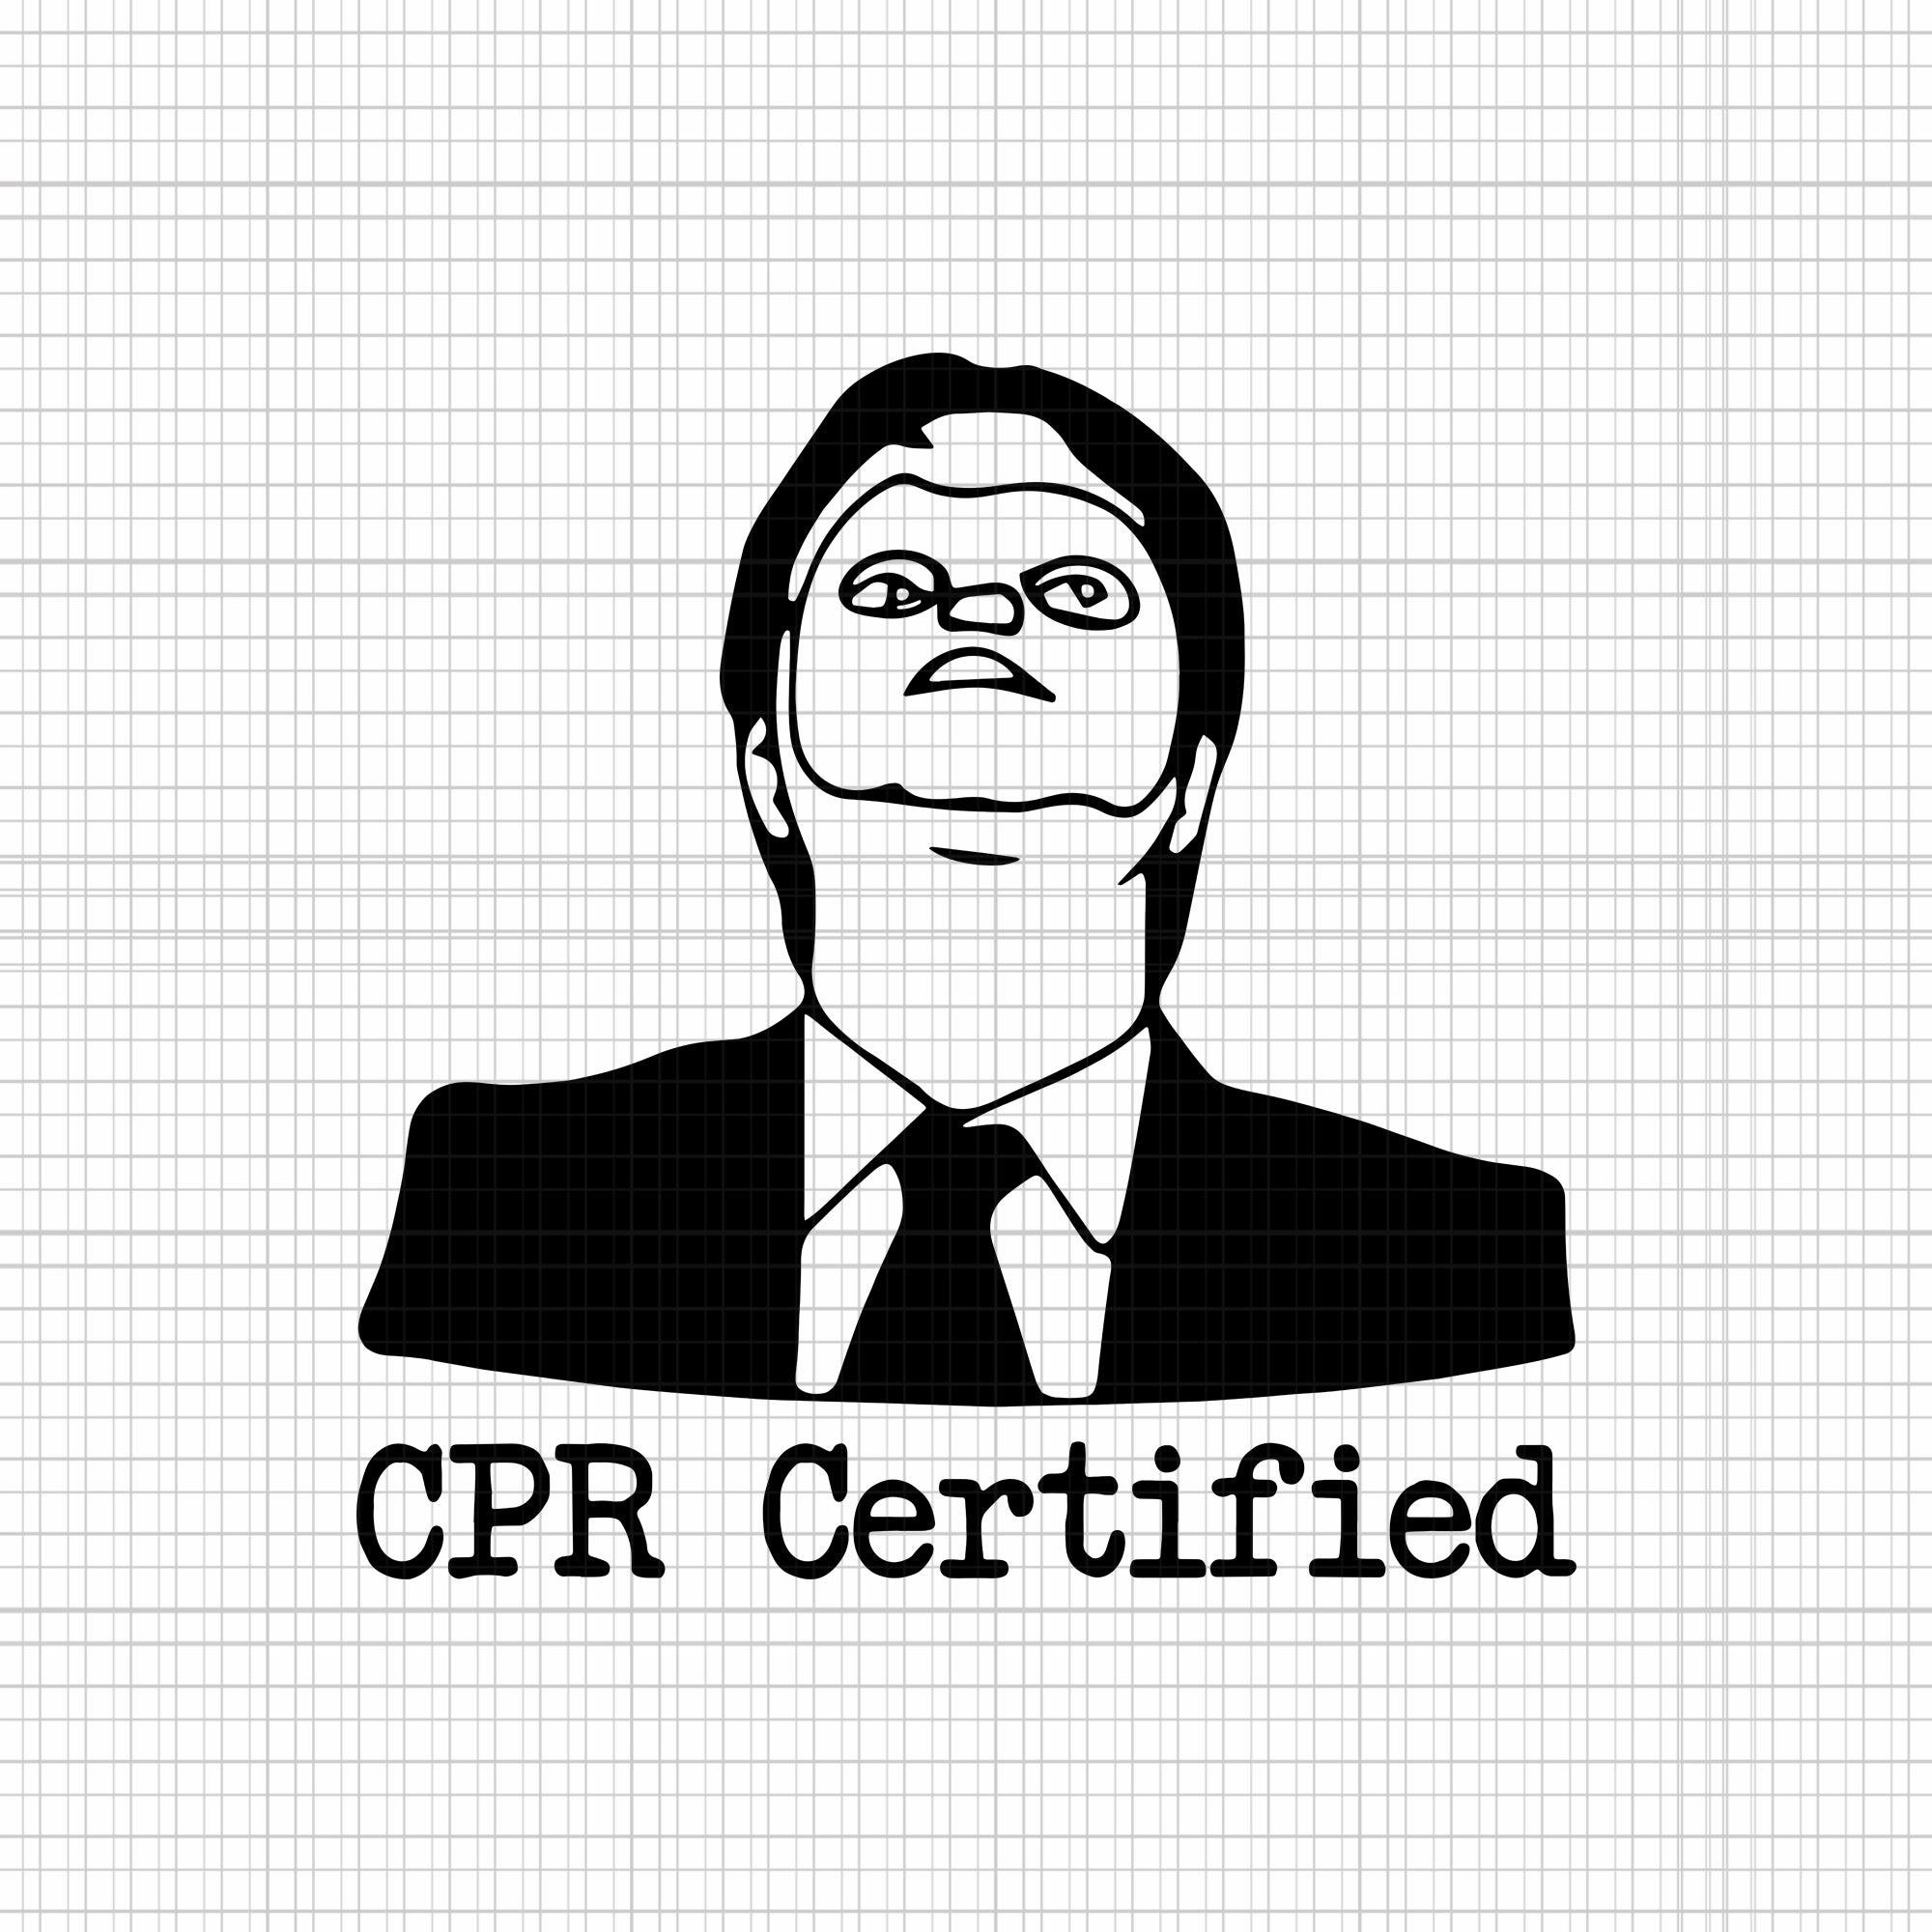 Cpr certified svg,cpr certified png,cpr certified,dwight cpr certified dwight dummy mask svg, eps, dxf, png